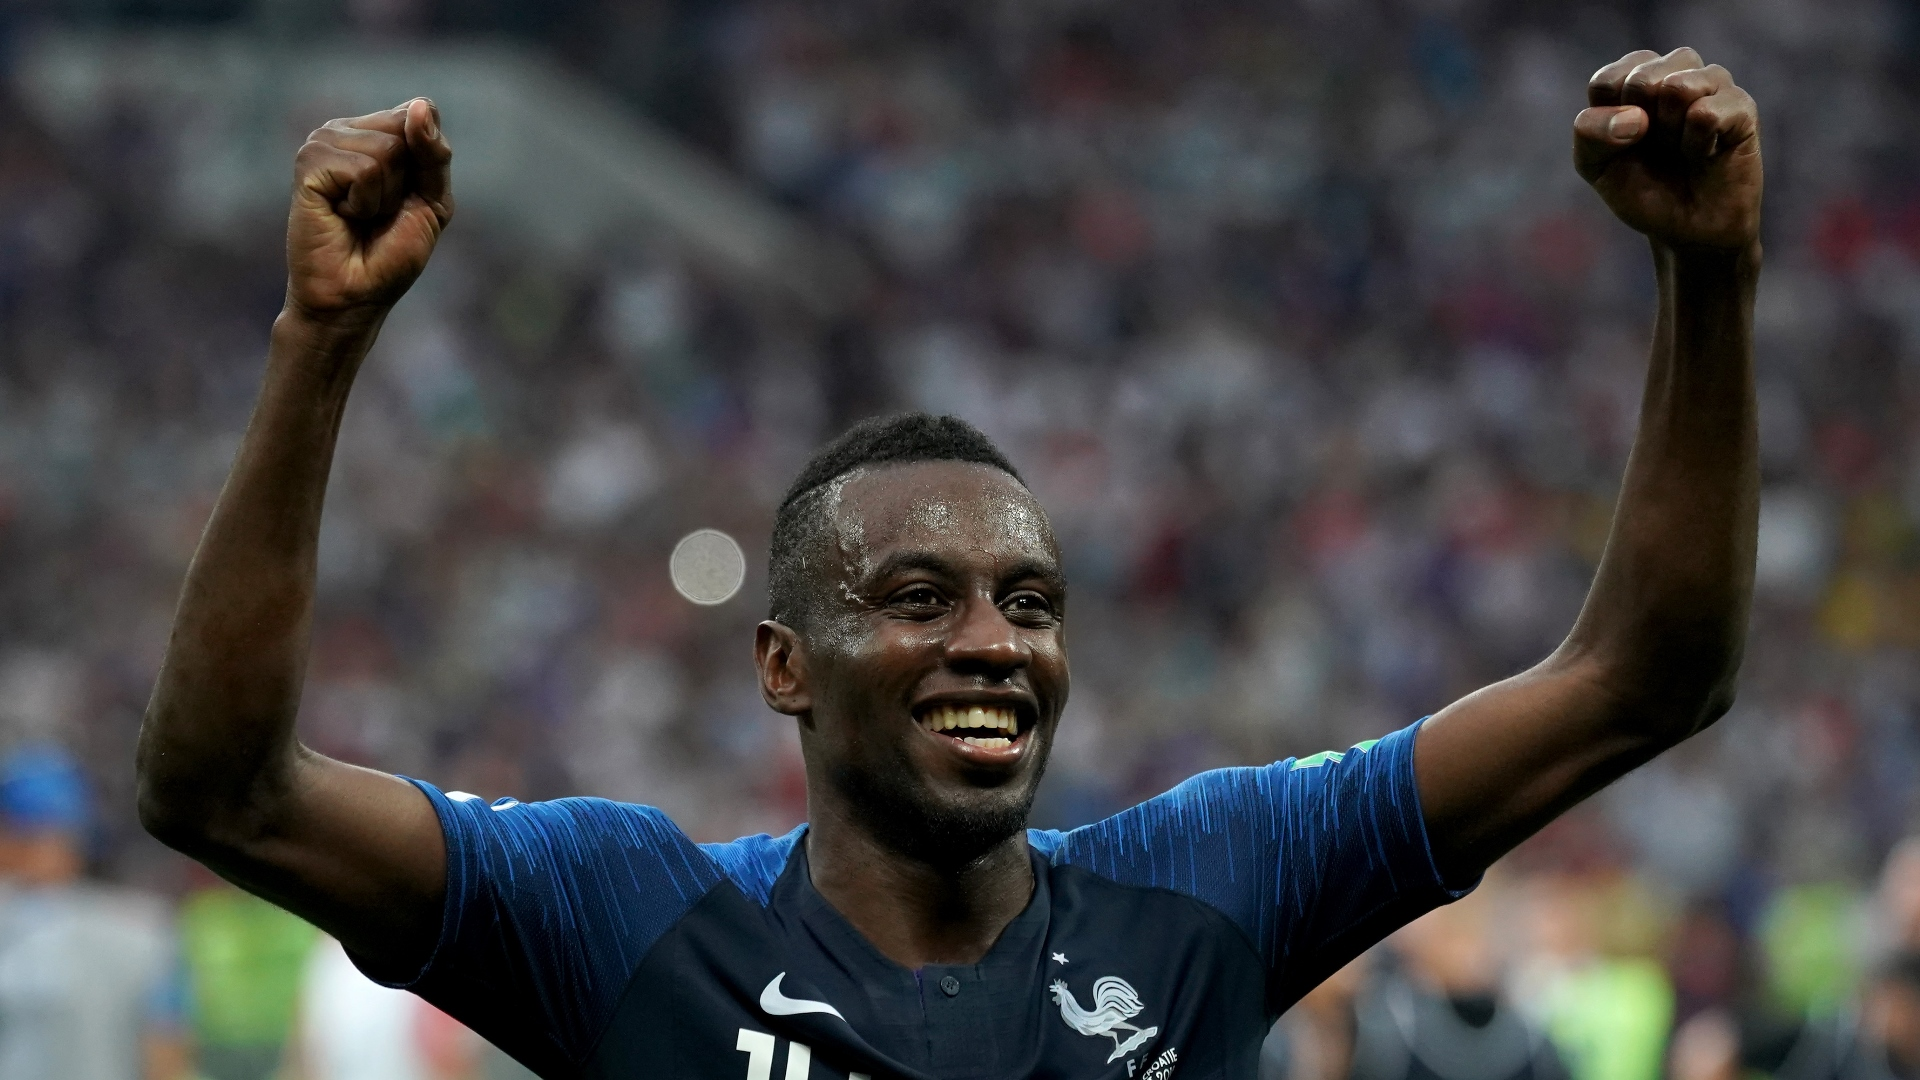 Juventus News Blaise Matuidi Taunts Best Player On The Planet Cristiano Ronaldo With World Cup Trophy Jibe Goal Com